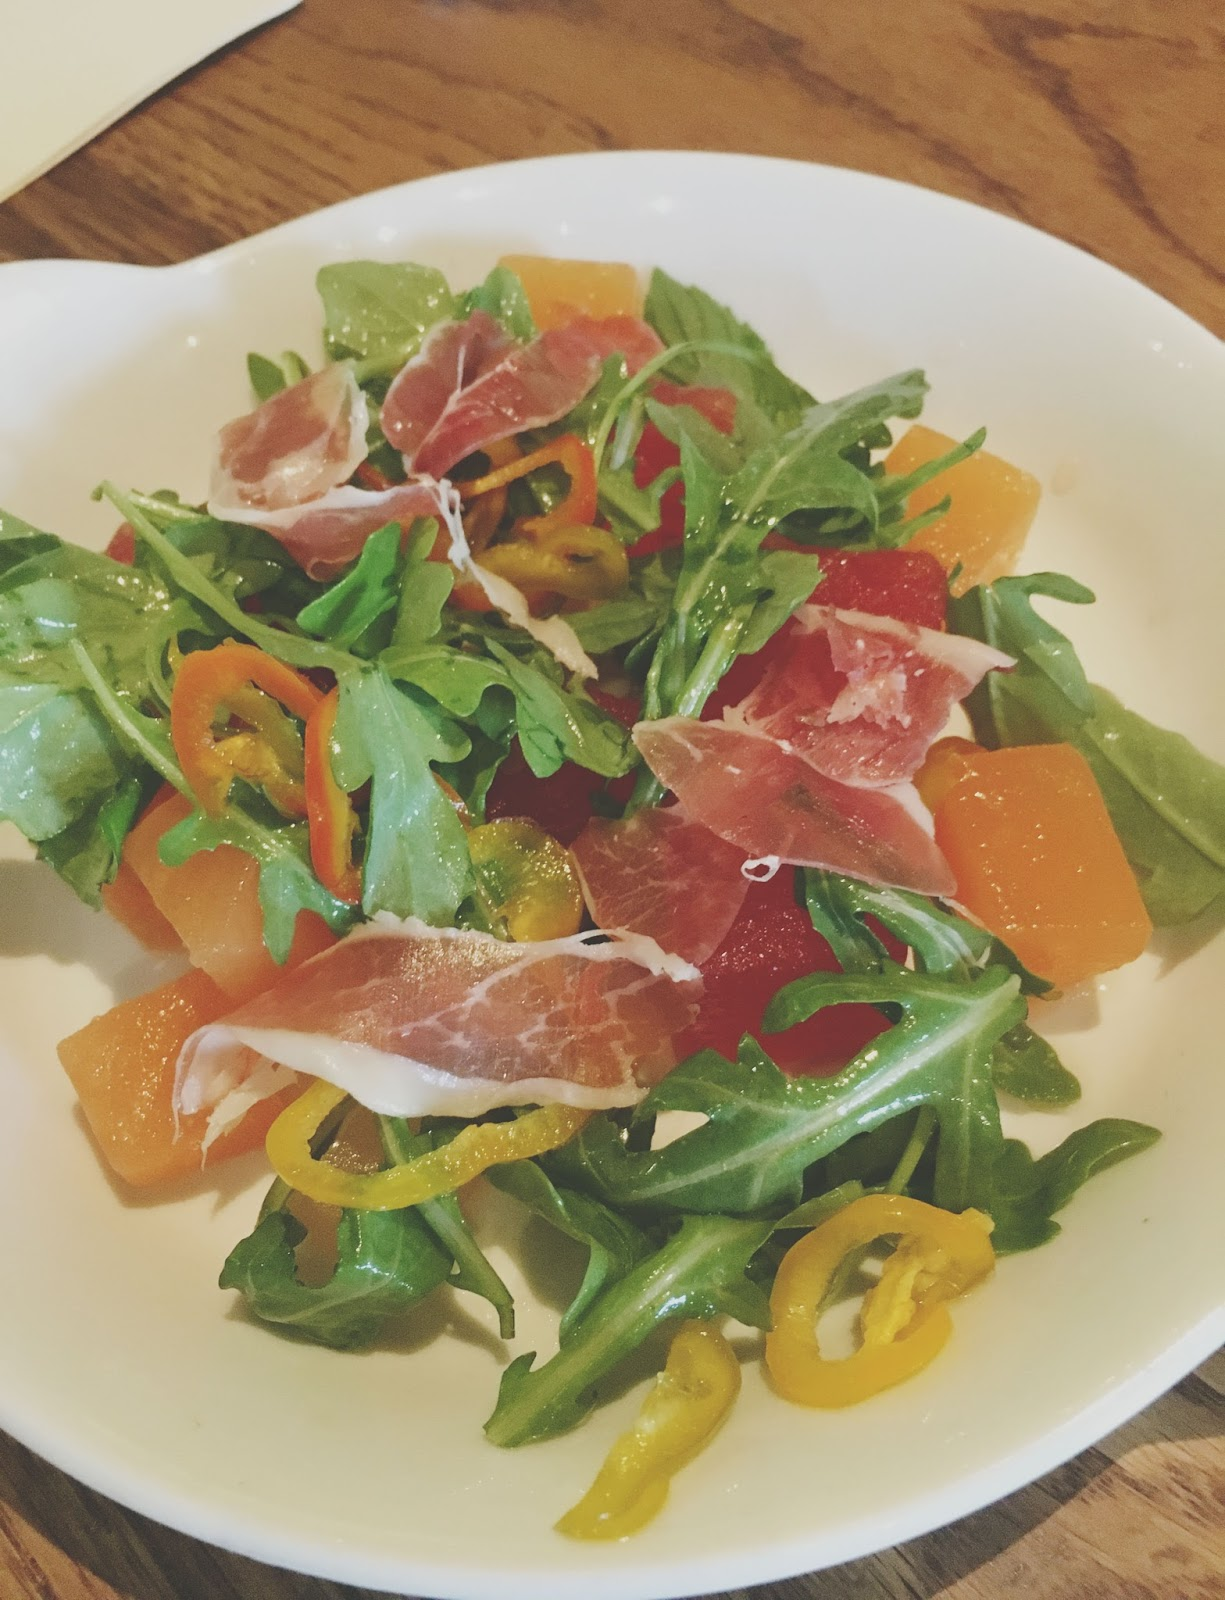 ham & melon salad at Hunky Dory - A restaurant in Houston, Texas